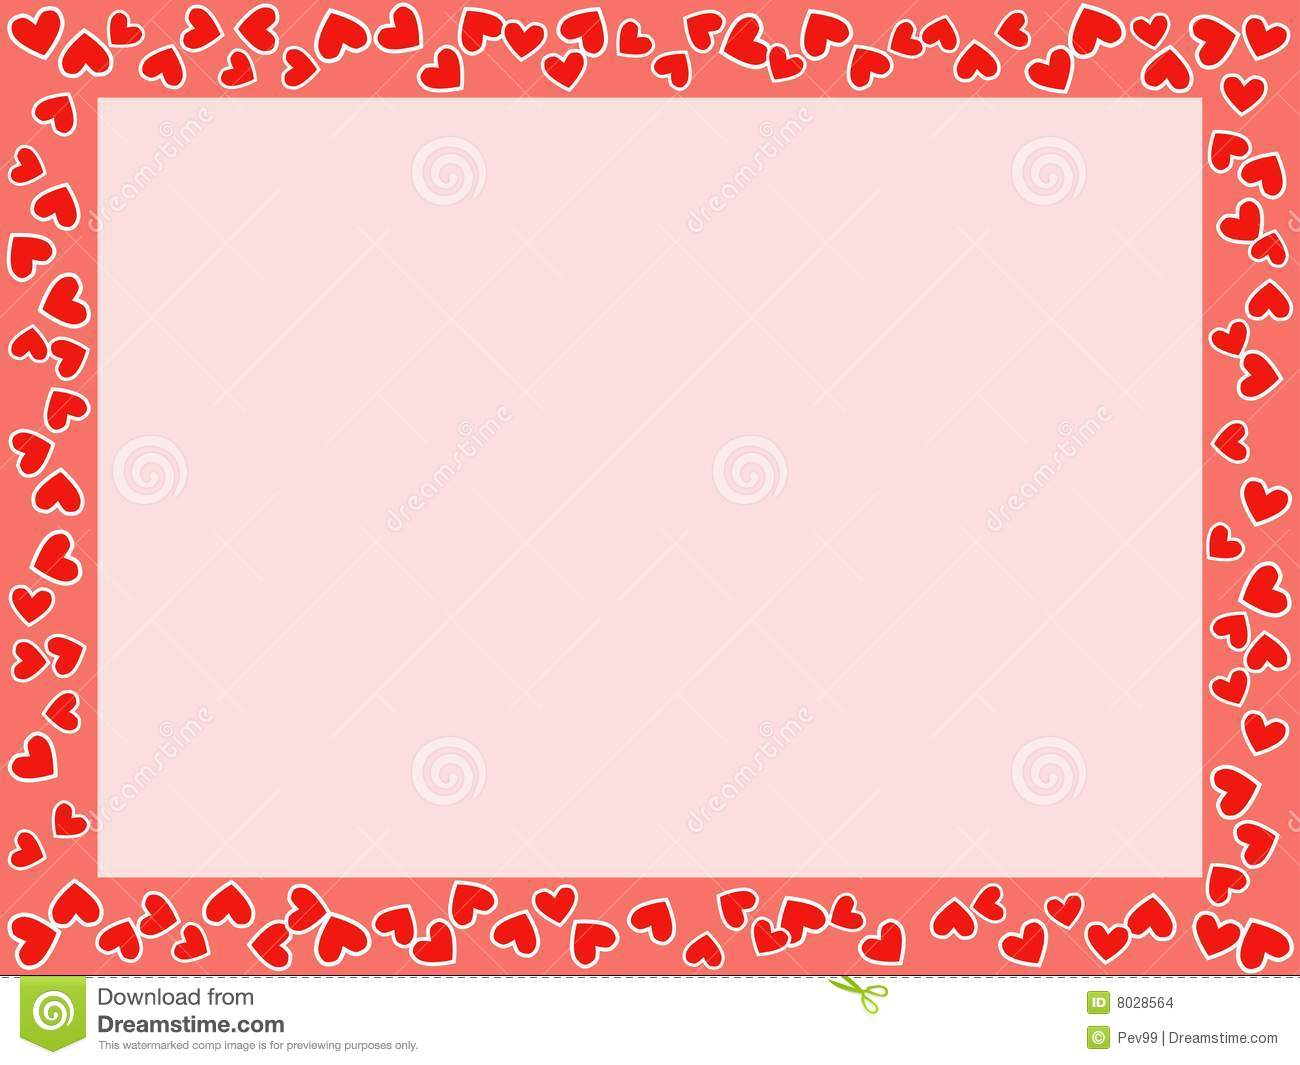 St.Valentine\'s Day frame stock illustration. Illustration of ...